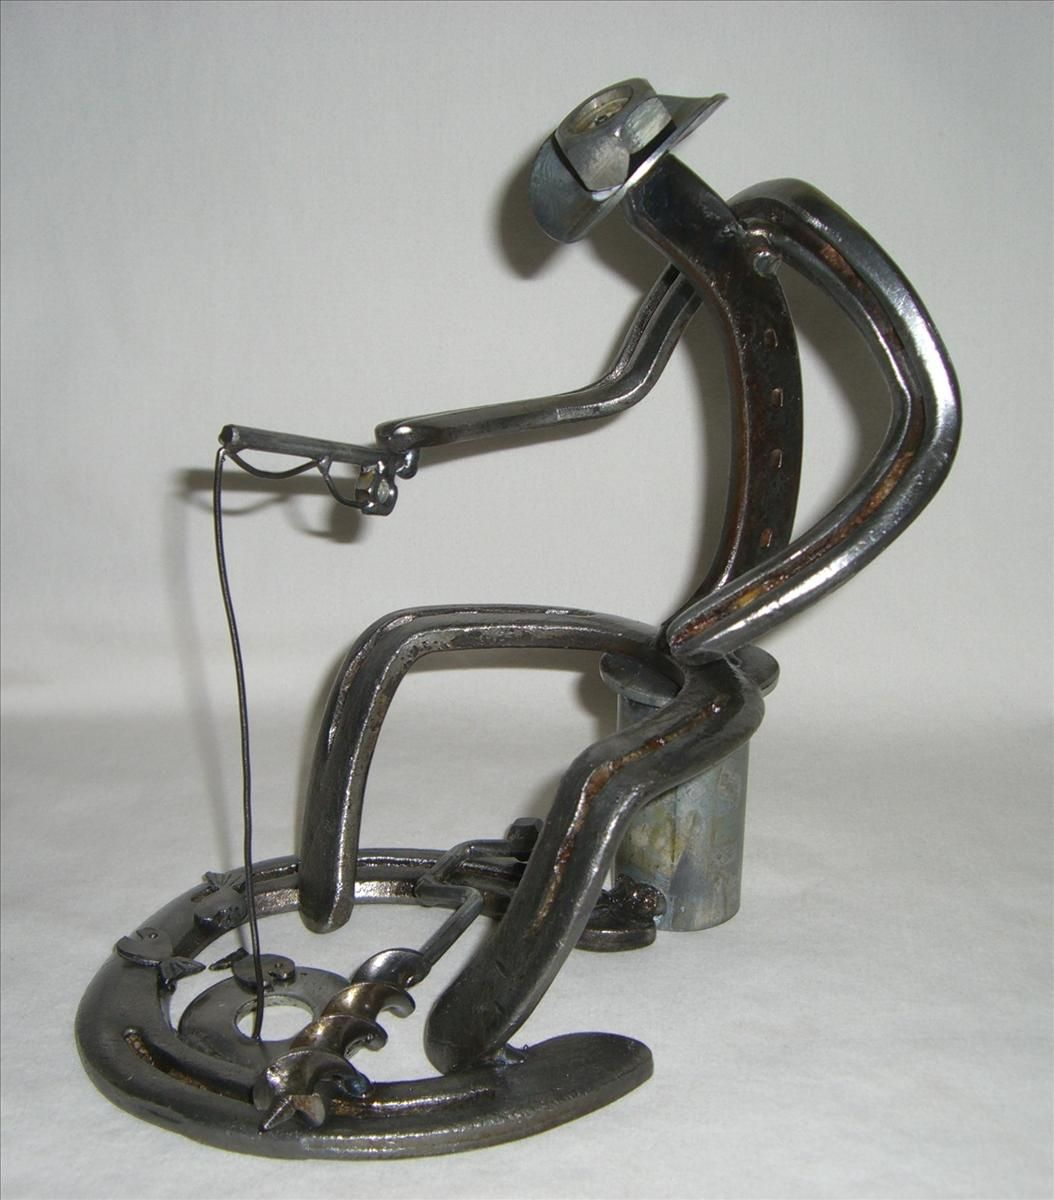 San tan metal art photo gallery horse shoe art for Shoe sculpture ideas